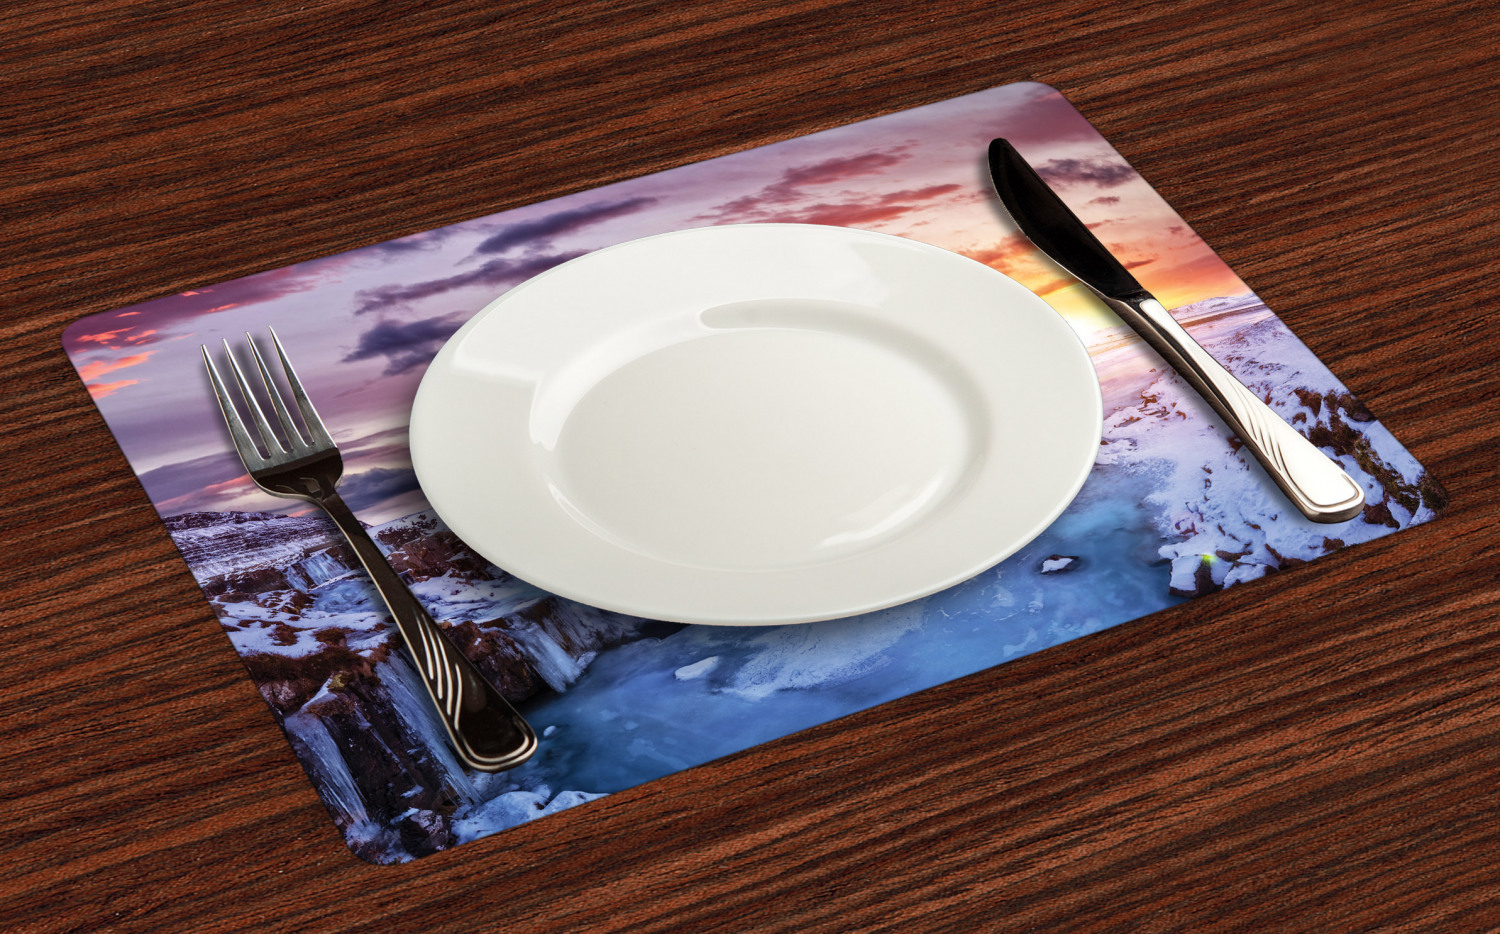 Ambesonne-Fabric-Place-Mats-Set-of-4-Placemats-for-Dining-Room-and-Kitchen-Table thumbnail 137